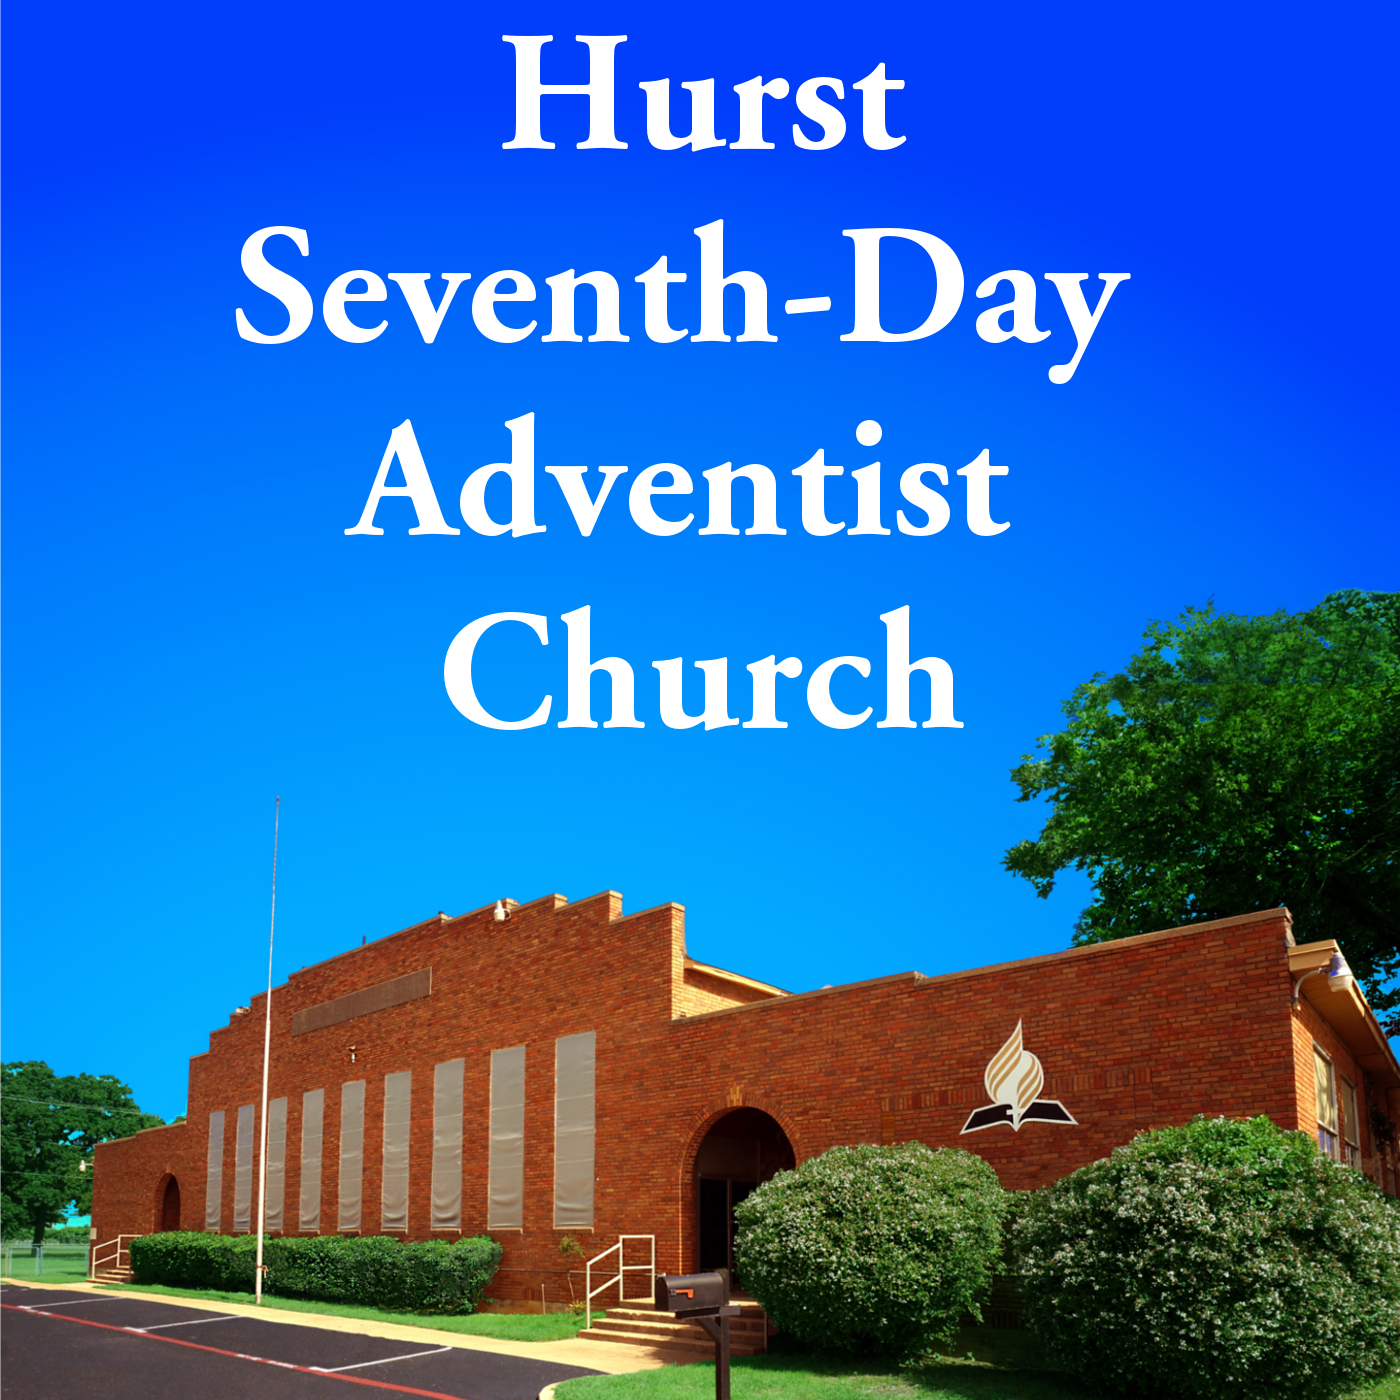 Hurst Seventh-day Adventist Church: Sermon Audio